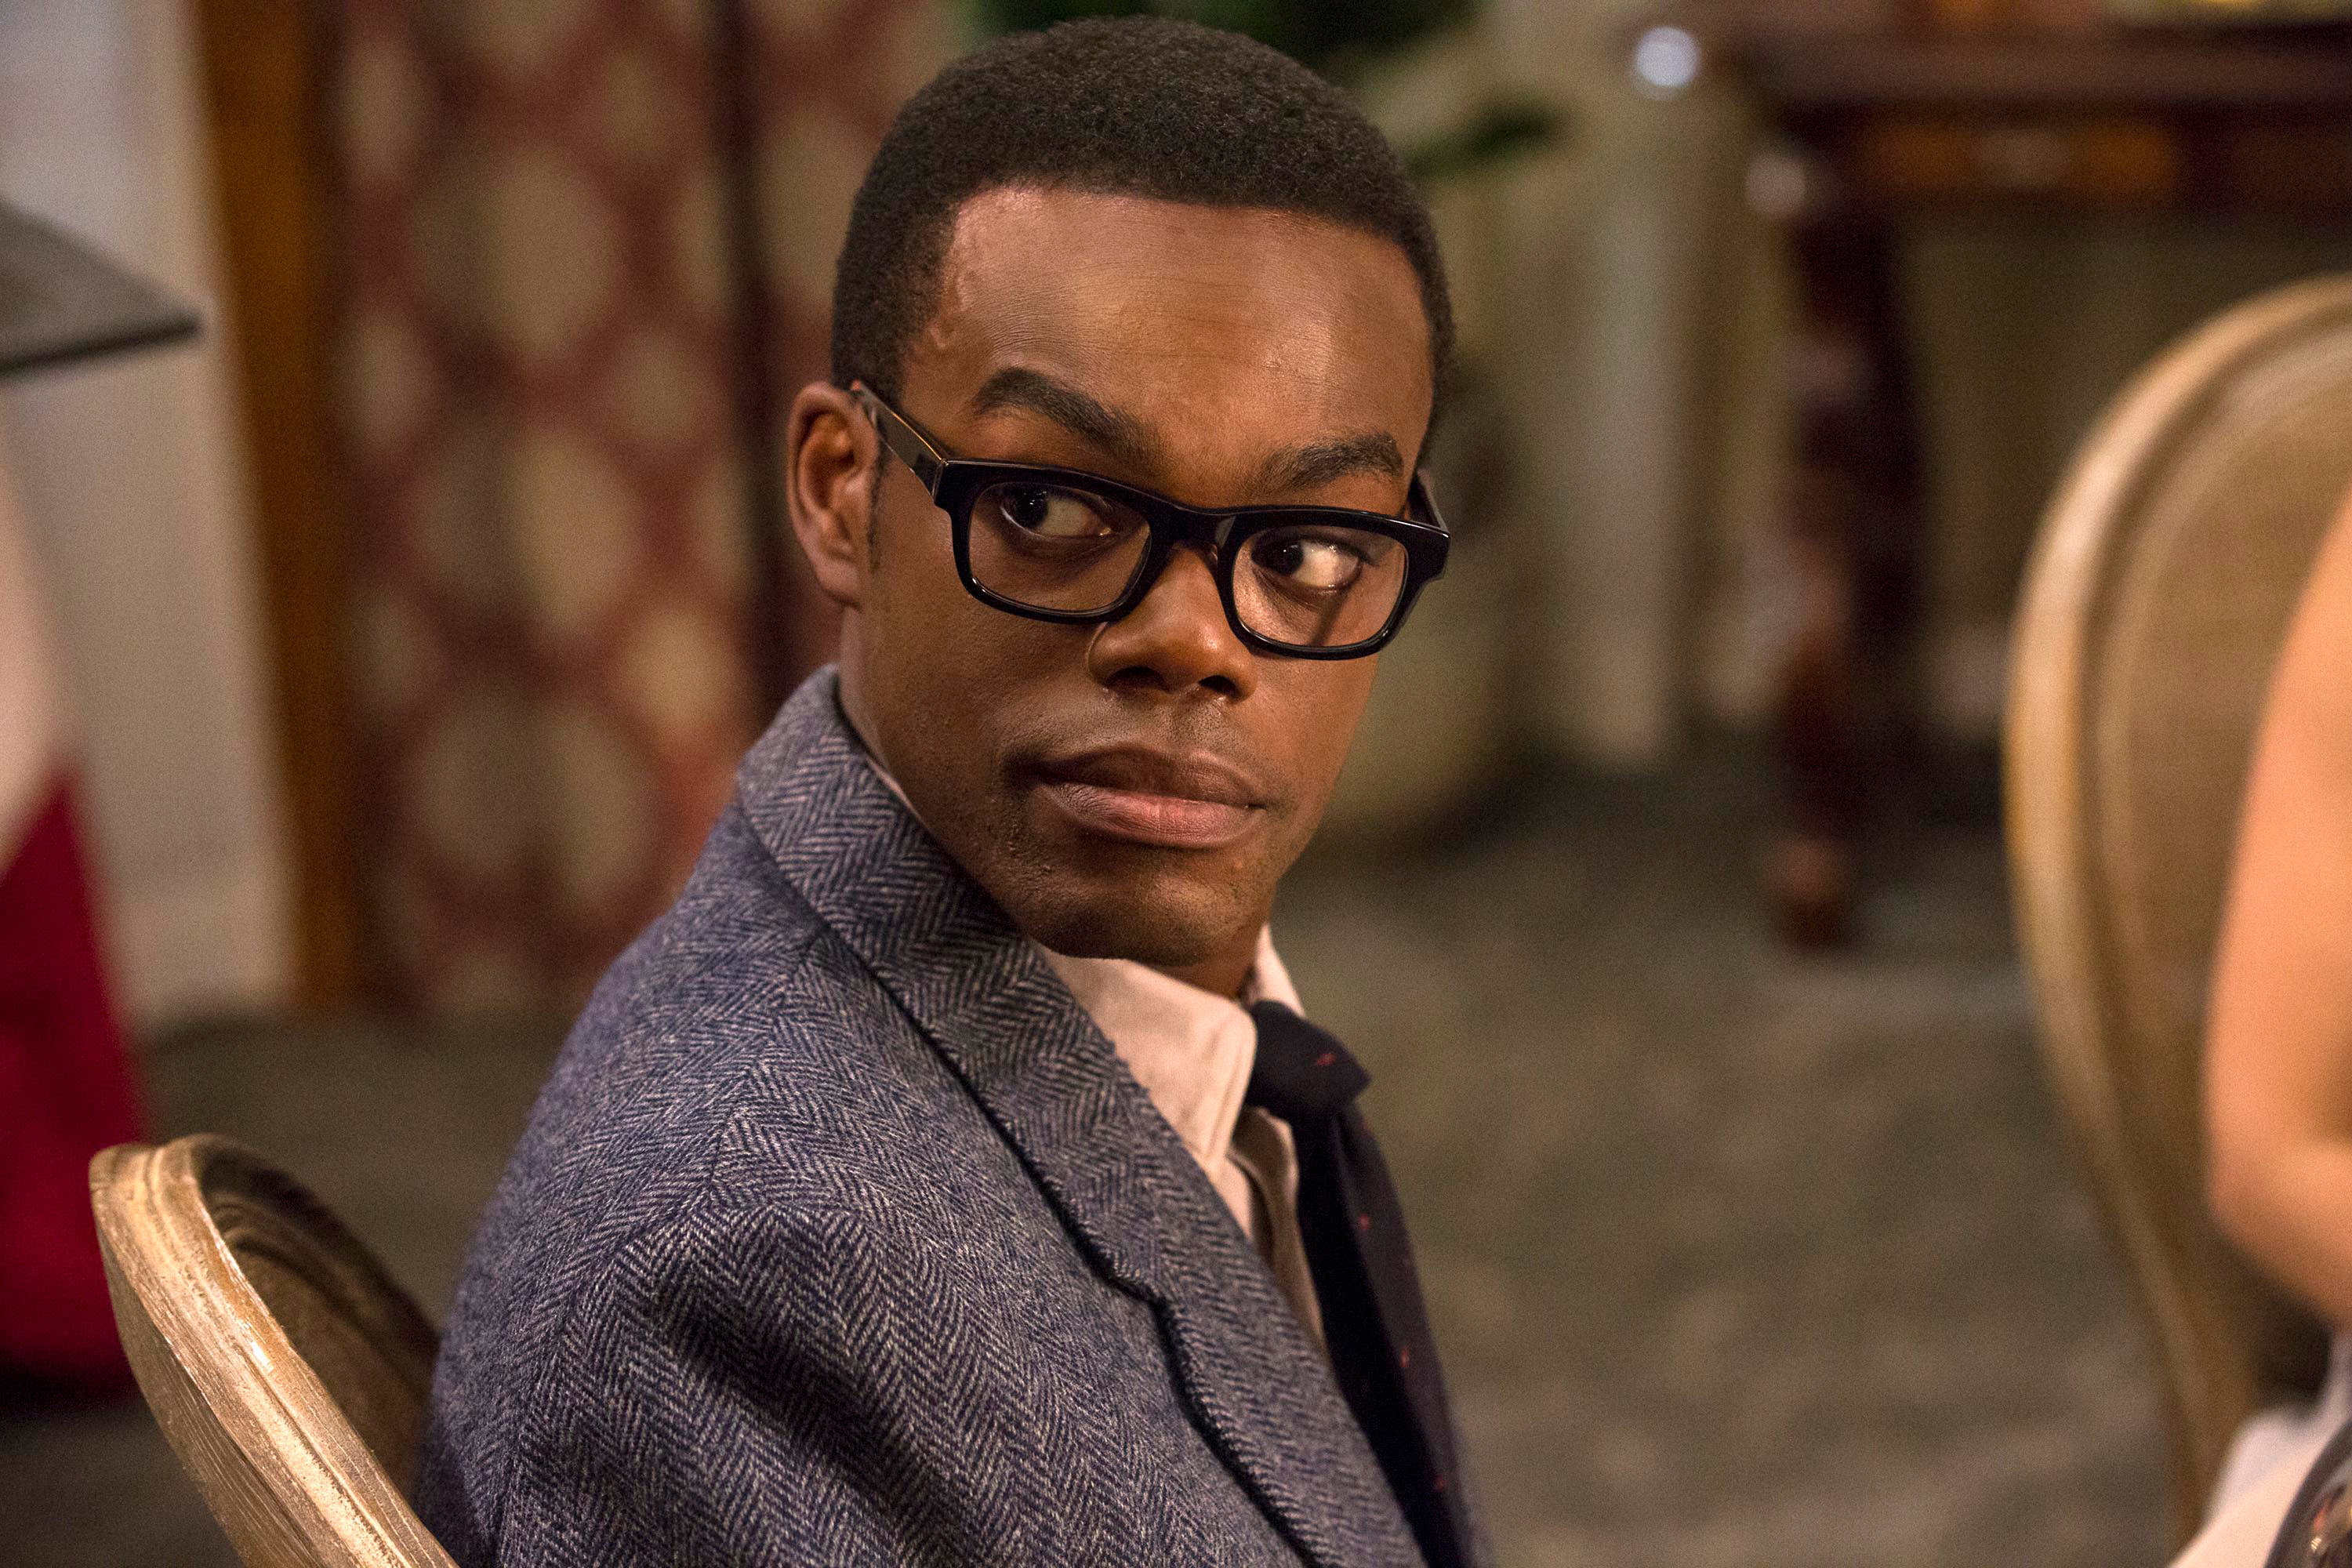 Chidi looking back in The Good Place